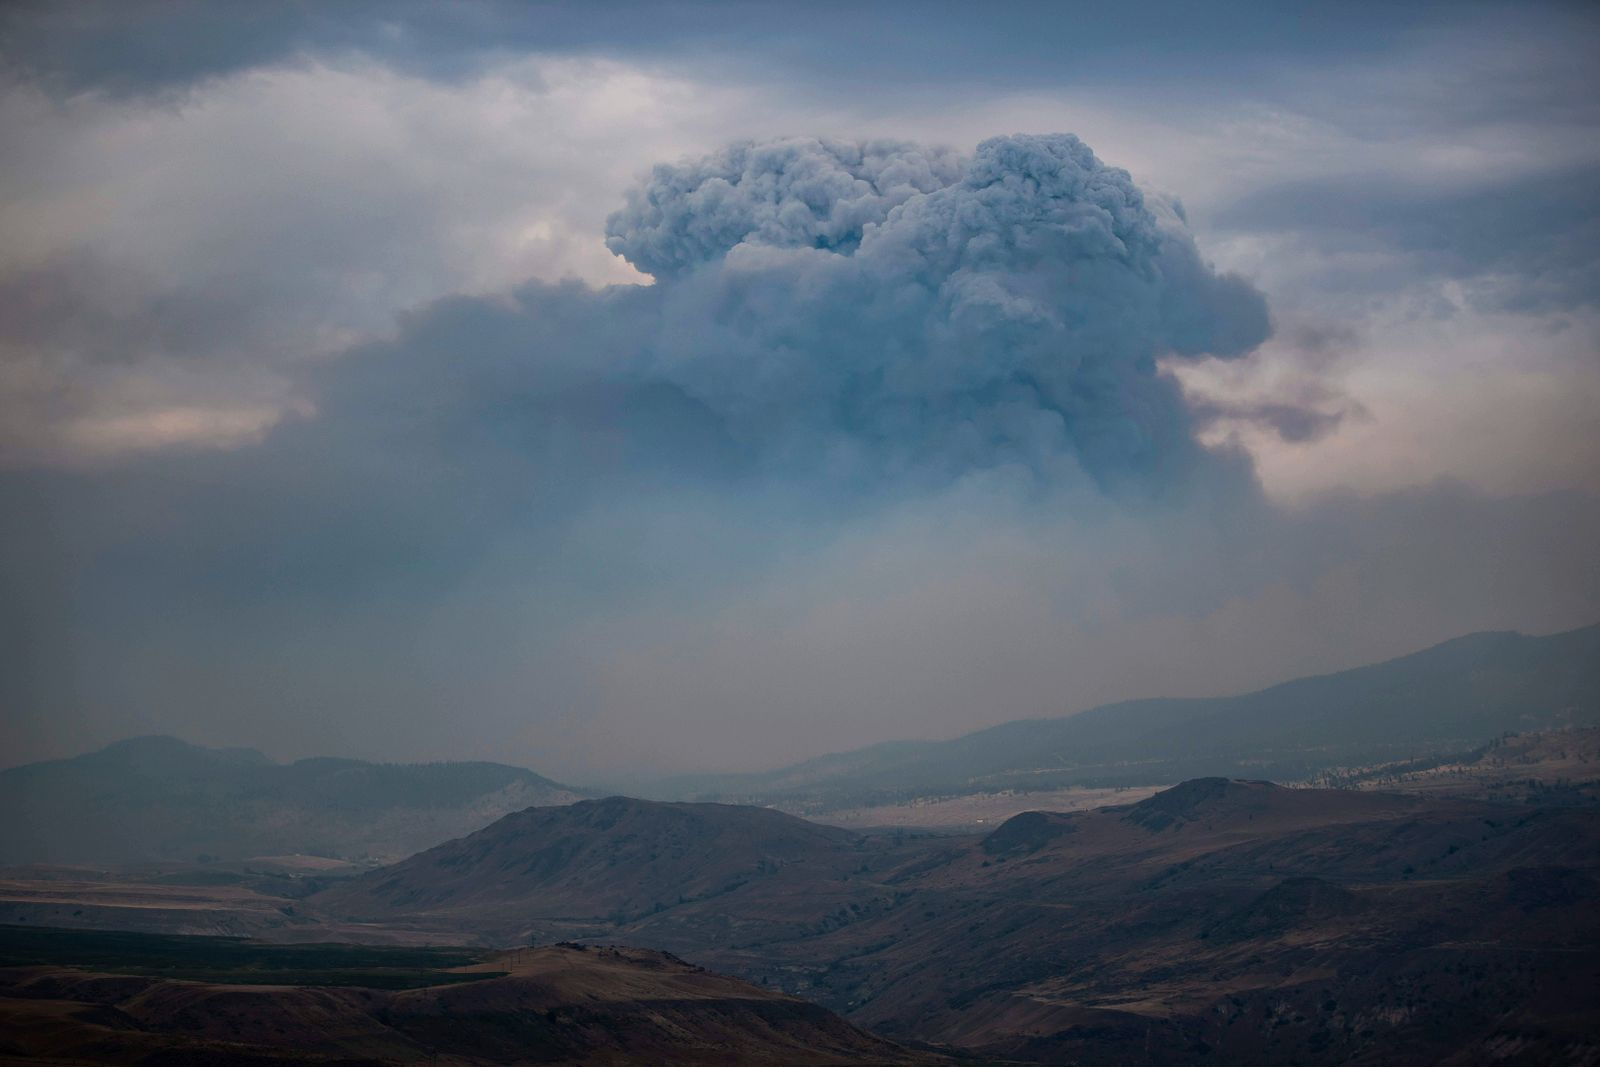 News Bilder des Tages July 16, 2021, Ashcroft, BC, Canada: A pyrocumulus cloud, also known as a fire cloud, forms in the